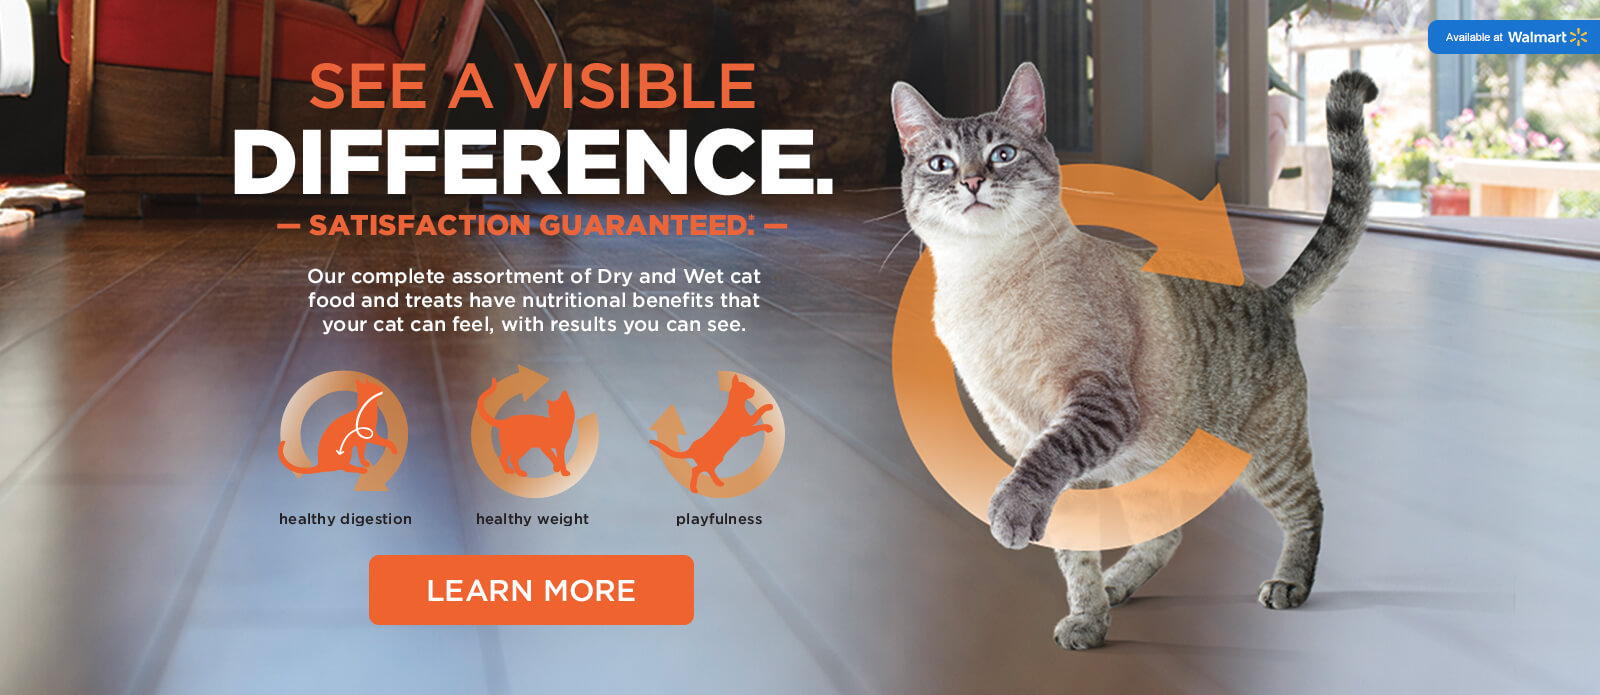 HUB-IamsVisibleDifference-Cat-Desktop